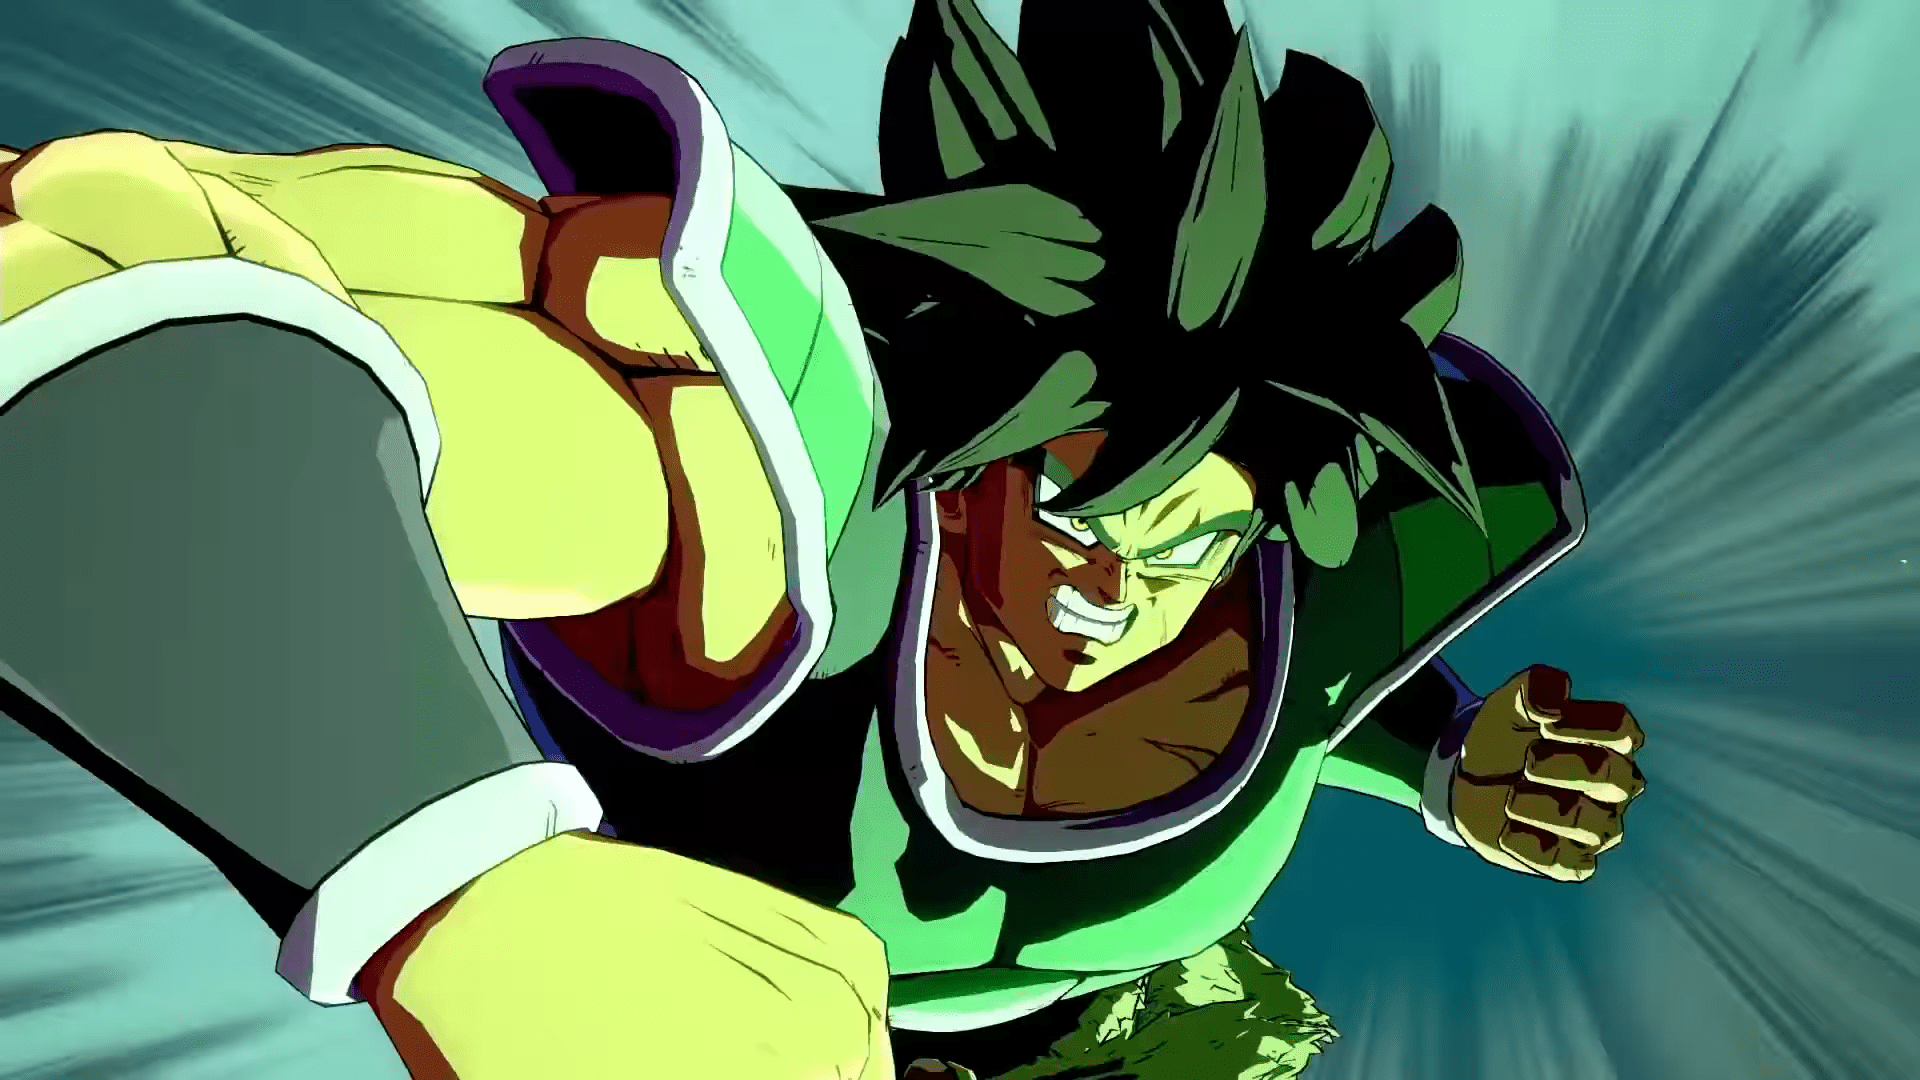 Dragon Ball Z Fighterz Latest Character Is The Legendary Super Saiyan Broly, New Trailer Released